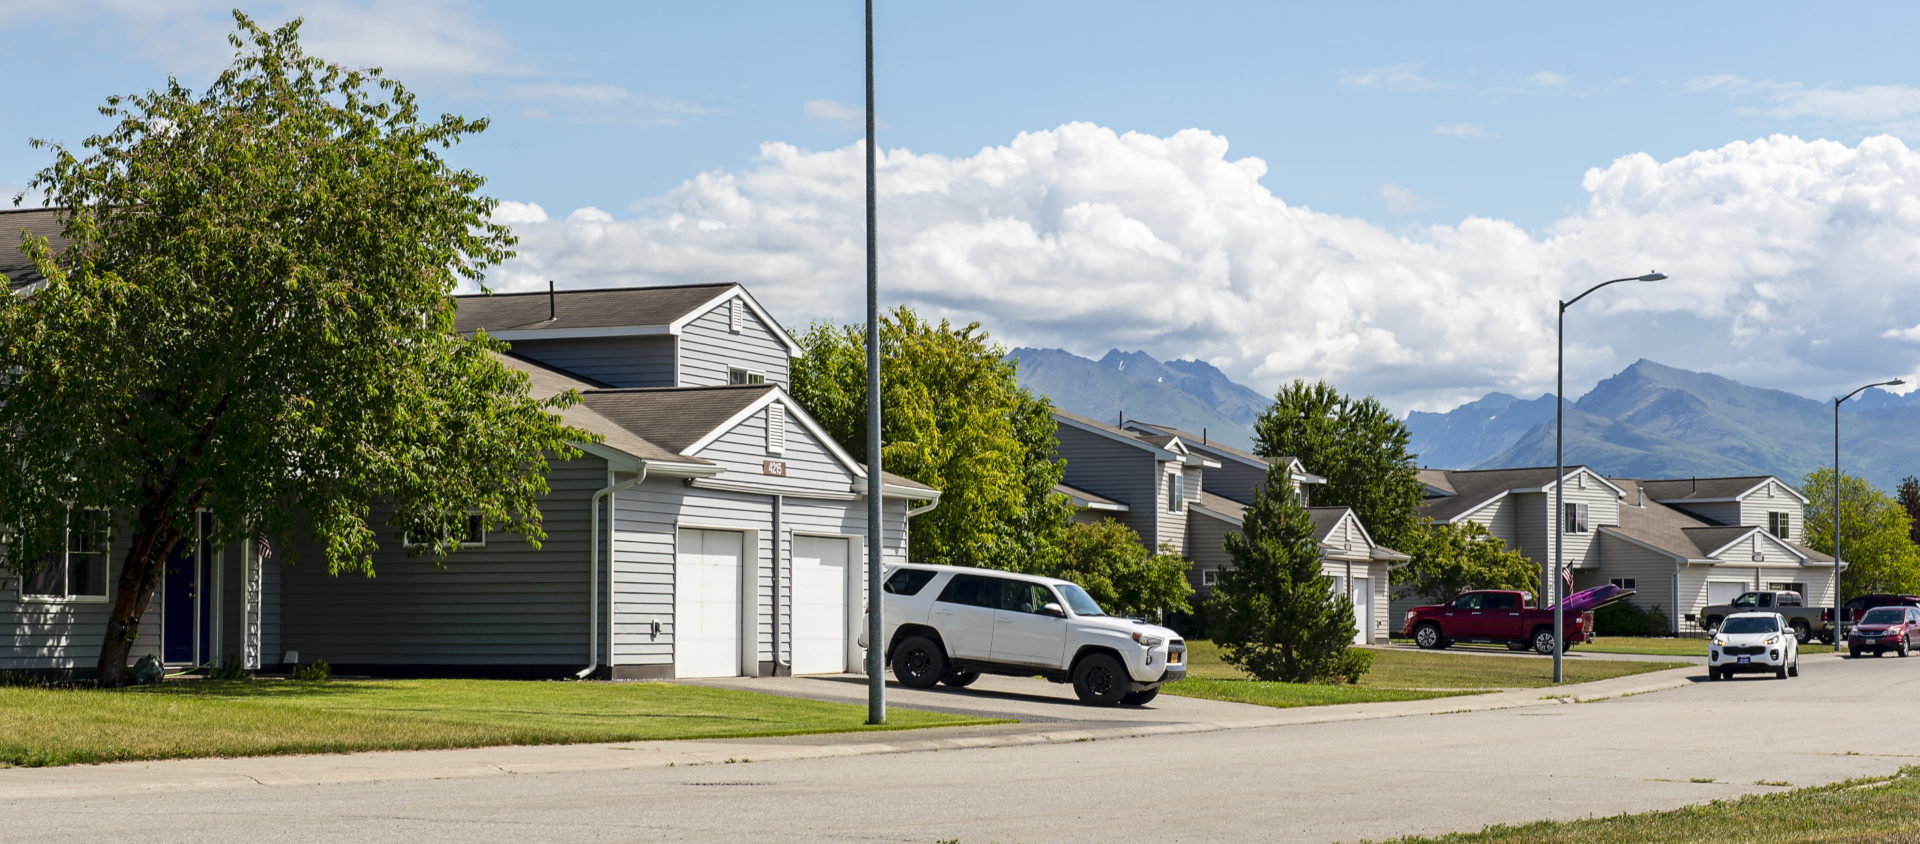 multiple homes surrounded by trees with the Chugach mountain range in the background